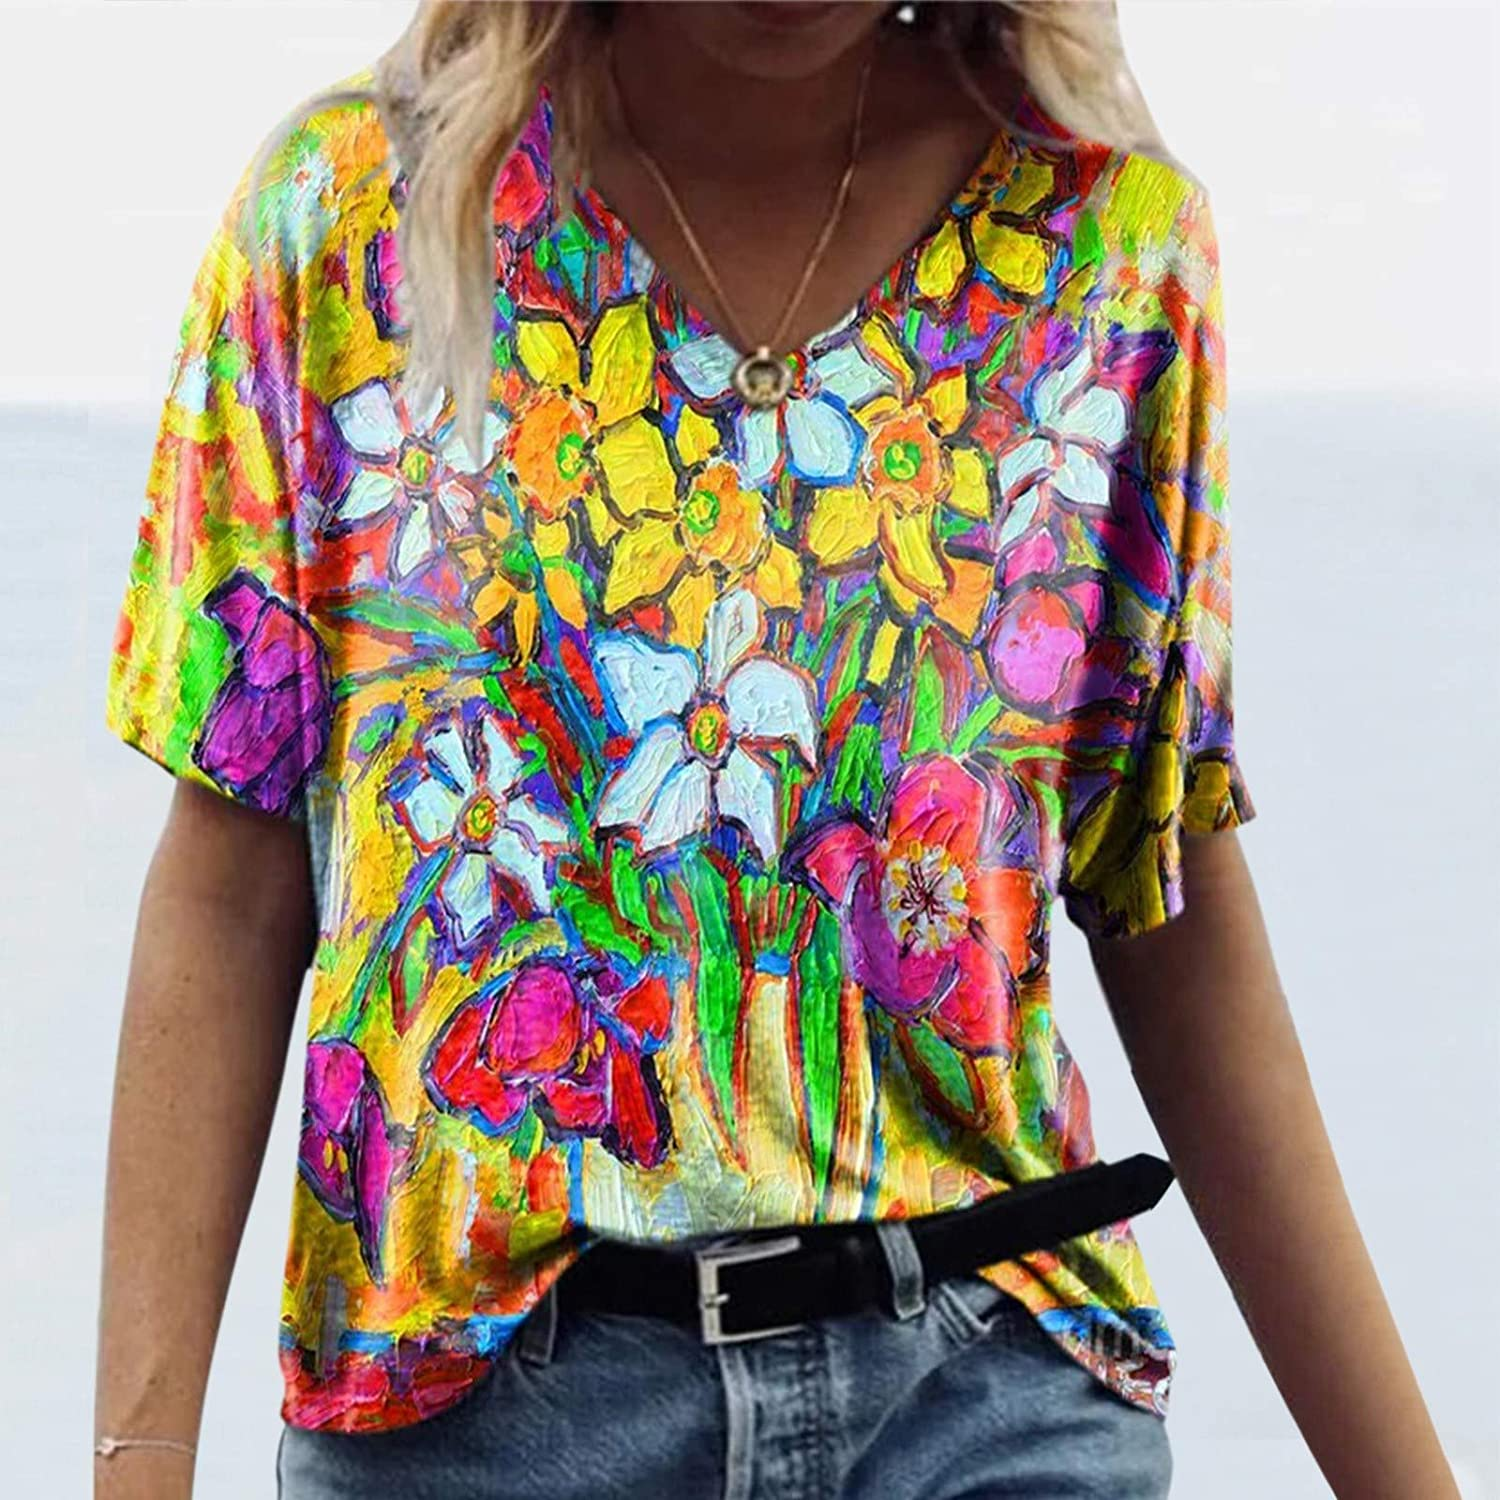 FABIURT Tops for Women Summer Short Sleeve Tunic Tops V Neck Colorful Floral Printed Tees Shirt Casual Comfy Blouse Tops